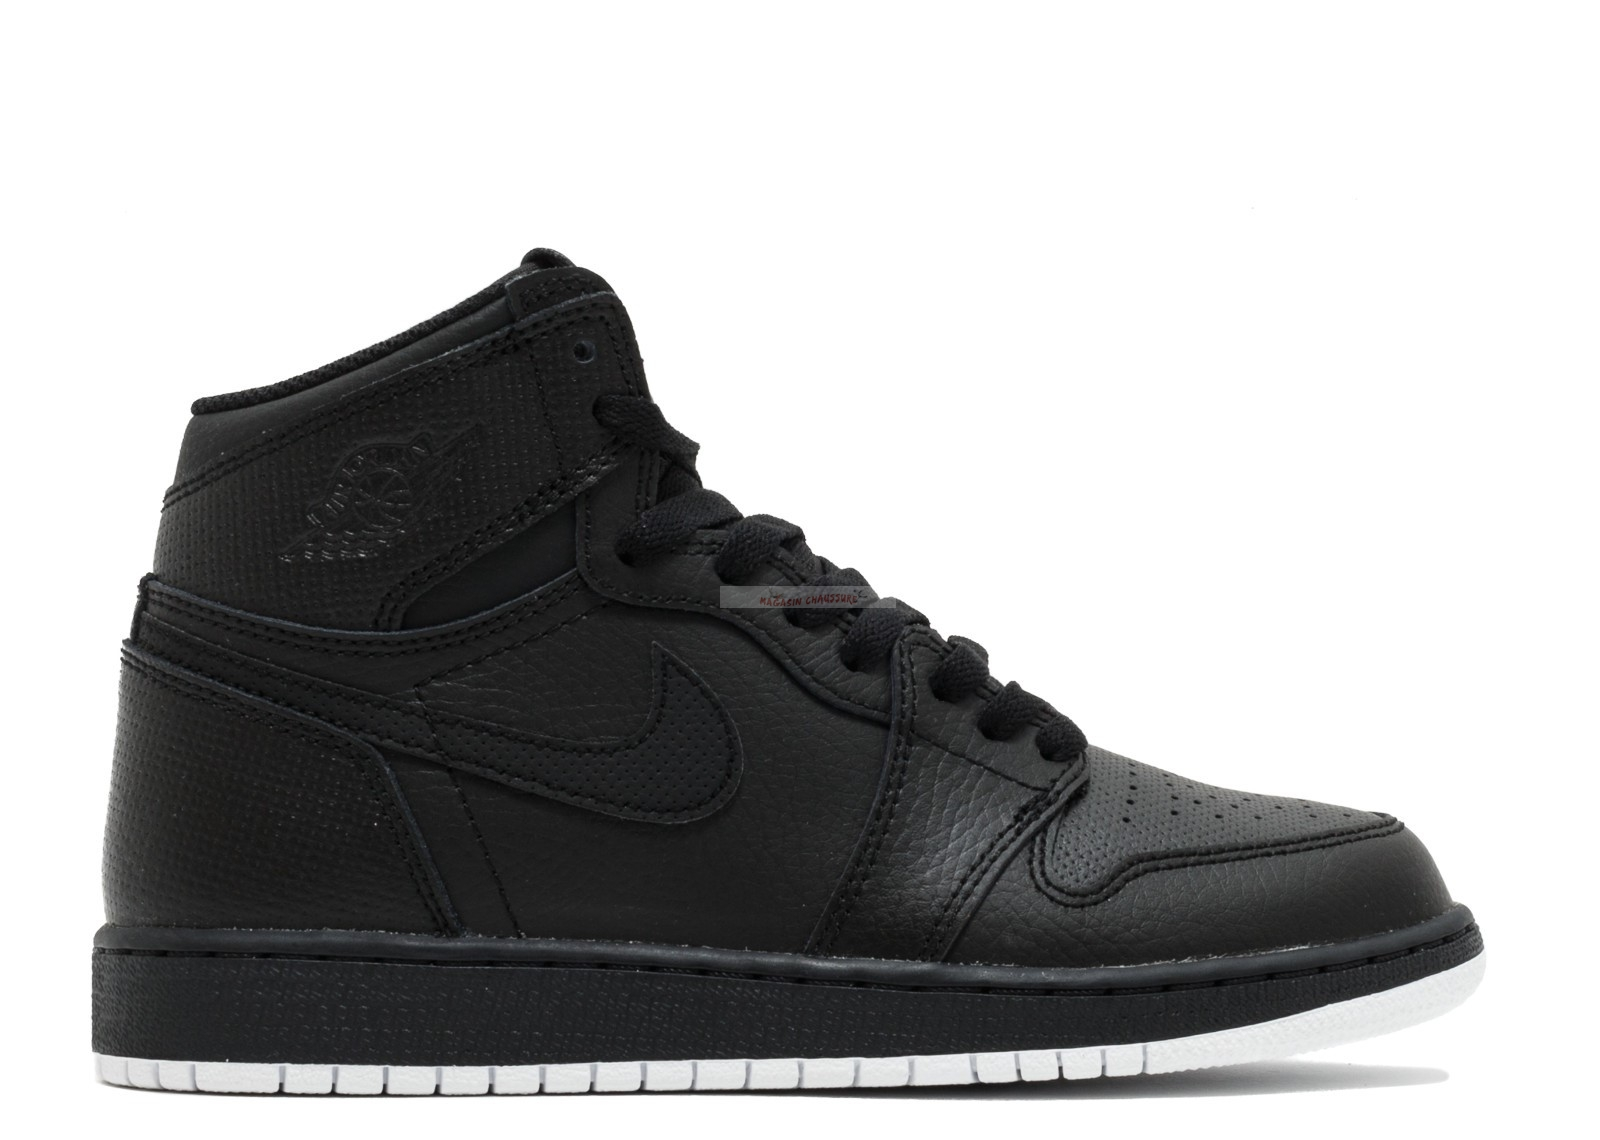 Air Jordan 1 Retro High Og Bg (Gs) Noir (575441-002) Chaussure de Basket